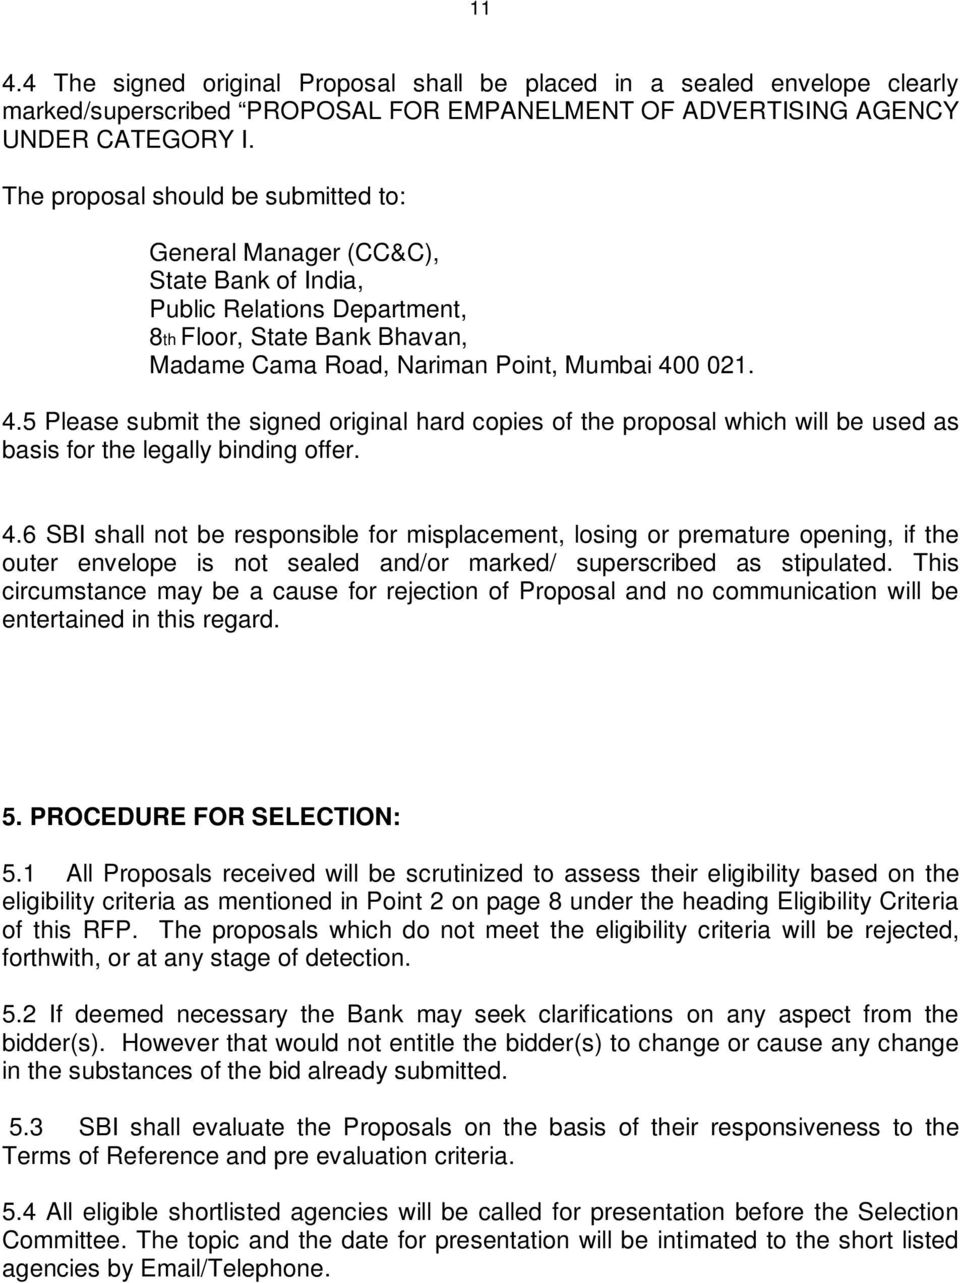 REQUEST FOR PROPOSAL FOR EMPANELMENT OF ADVERTISING AGENCIES